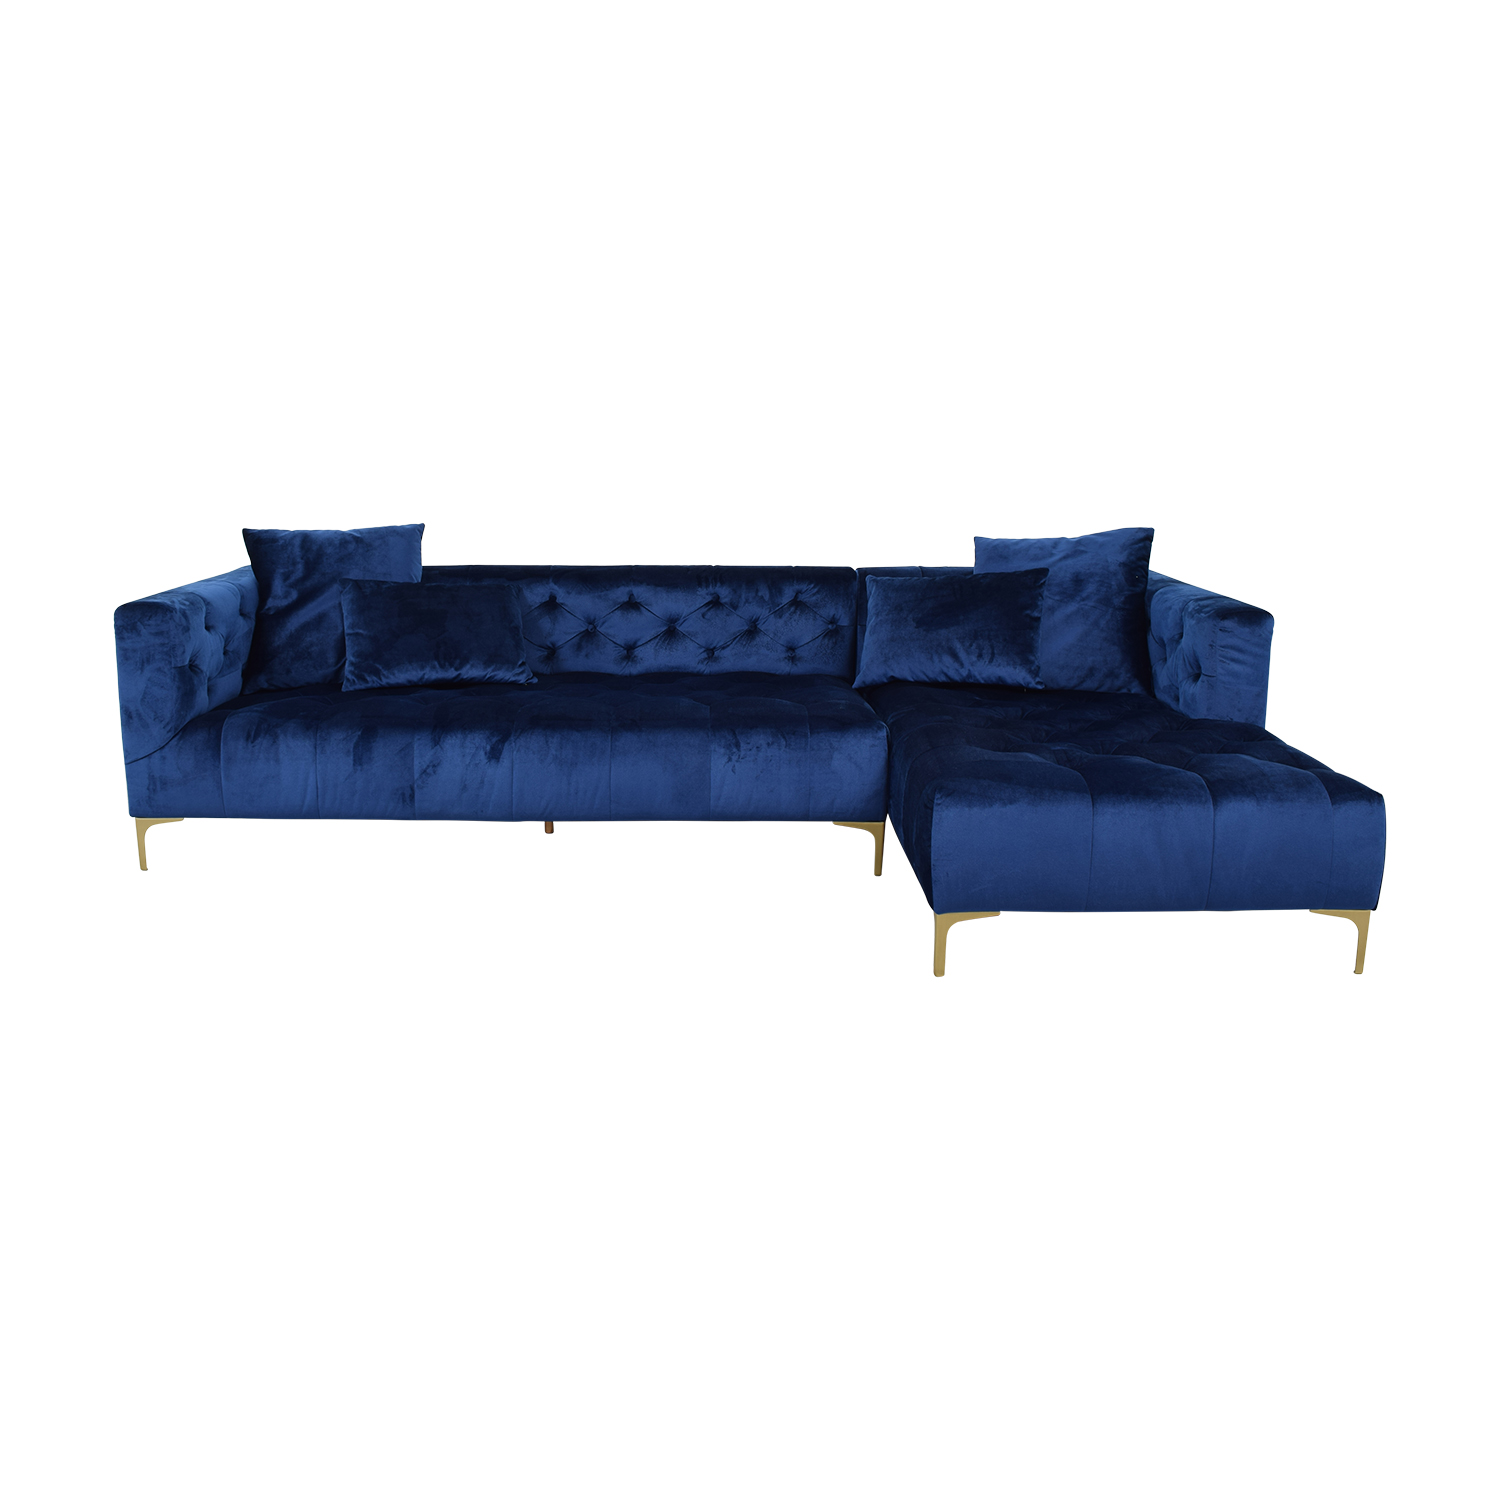 58% OFF - Ms. Chesterfield Mod Velvet Oxford Blue Sectional / Sofas